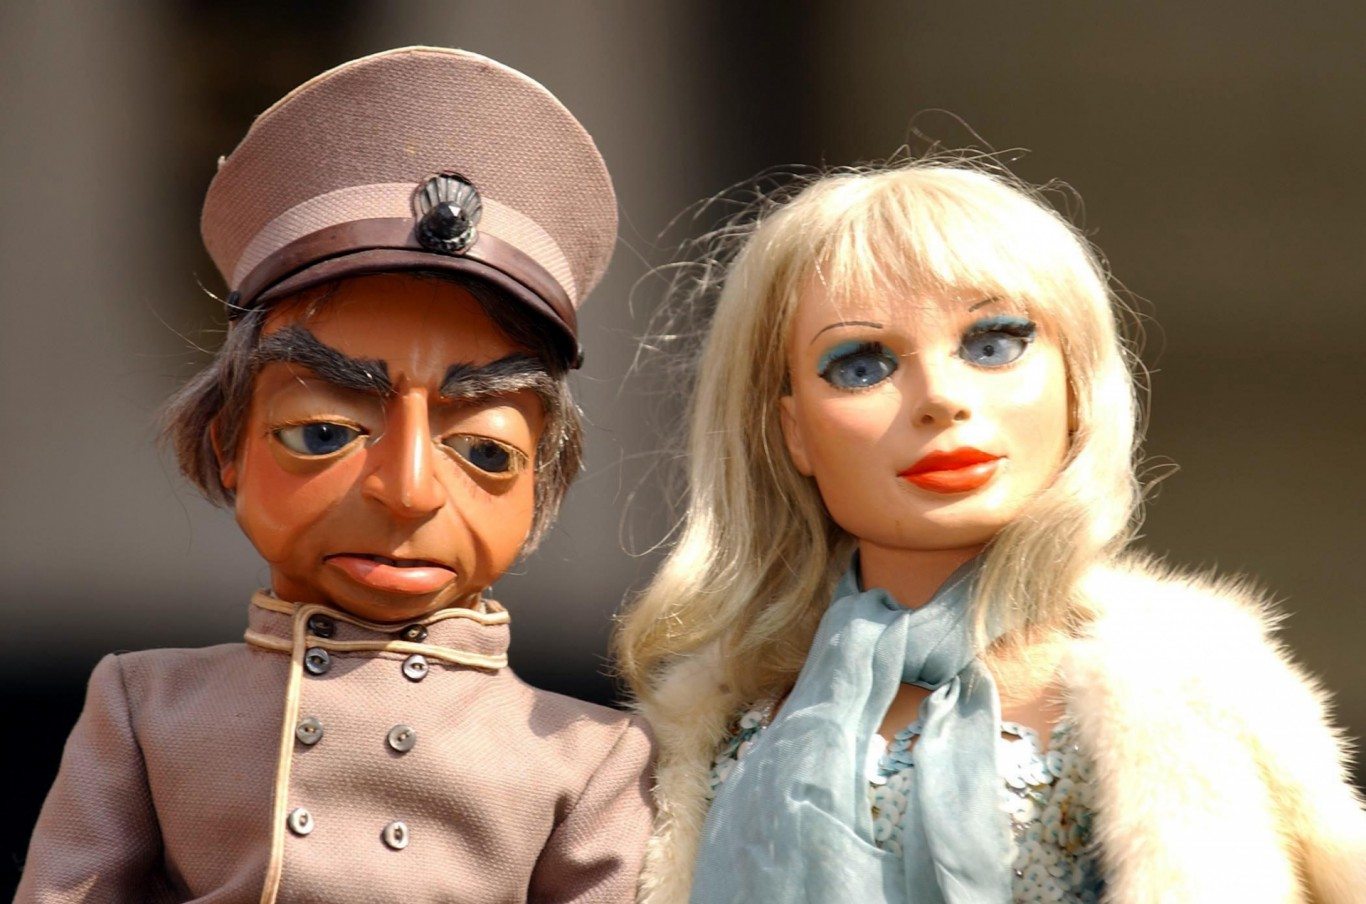 It's 52 years since Thunderbirds first screened in the UK